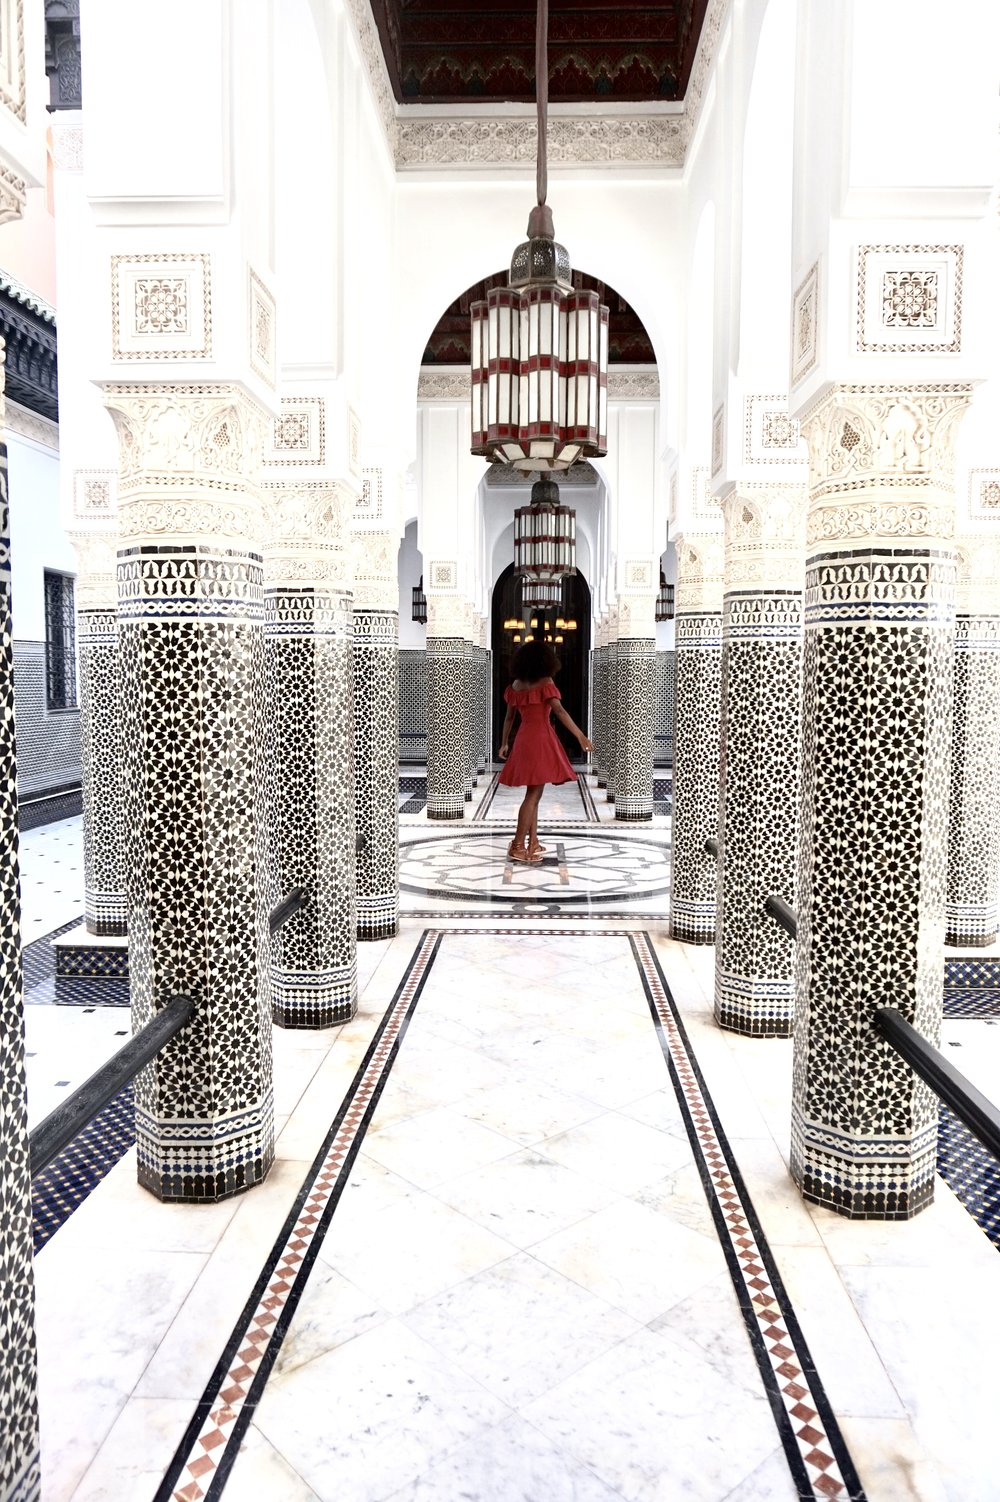 This photo was captured in Morocco with less than three attempts. I knew exactly where I would stand and what pose I would do before asking another traveler to take the shot for me. I then returned the favor by capturing a photo of her and her friend.